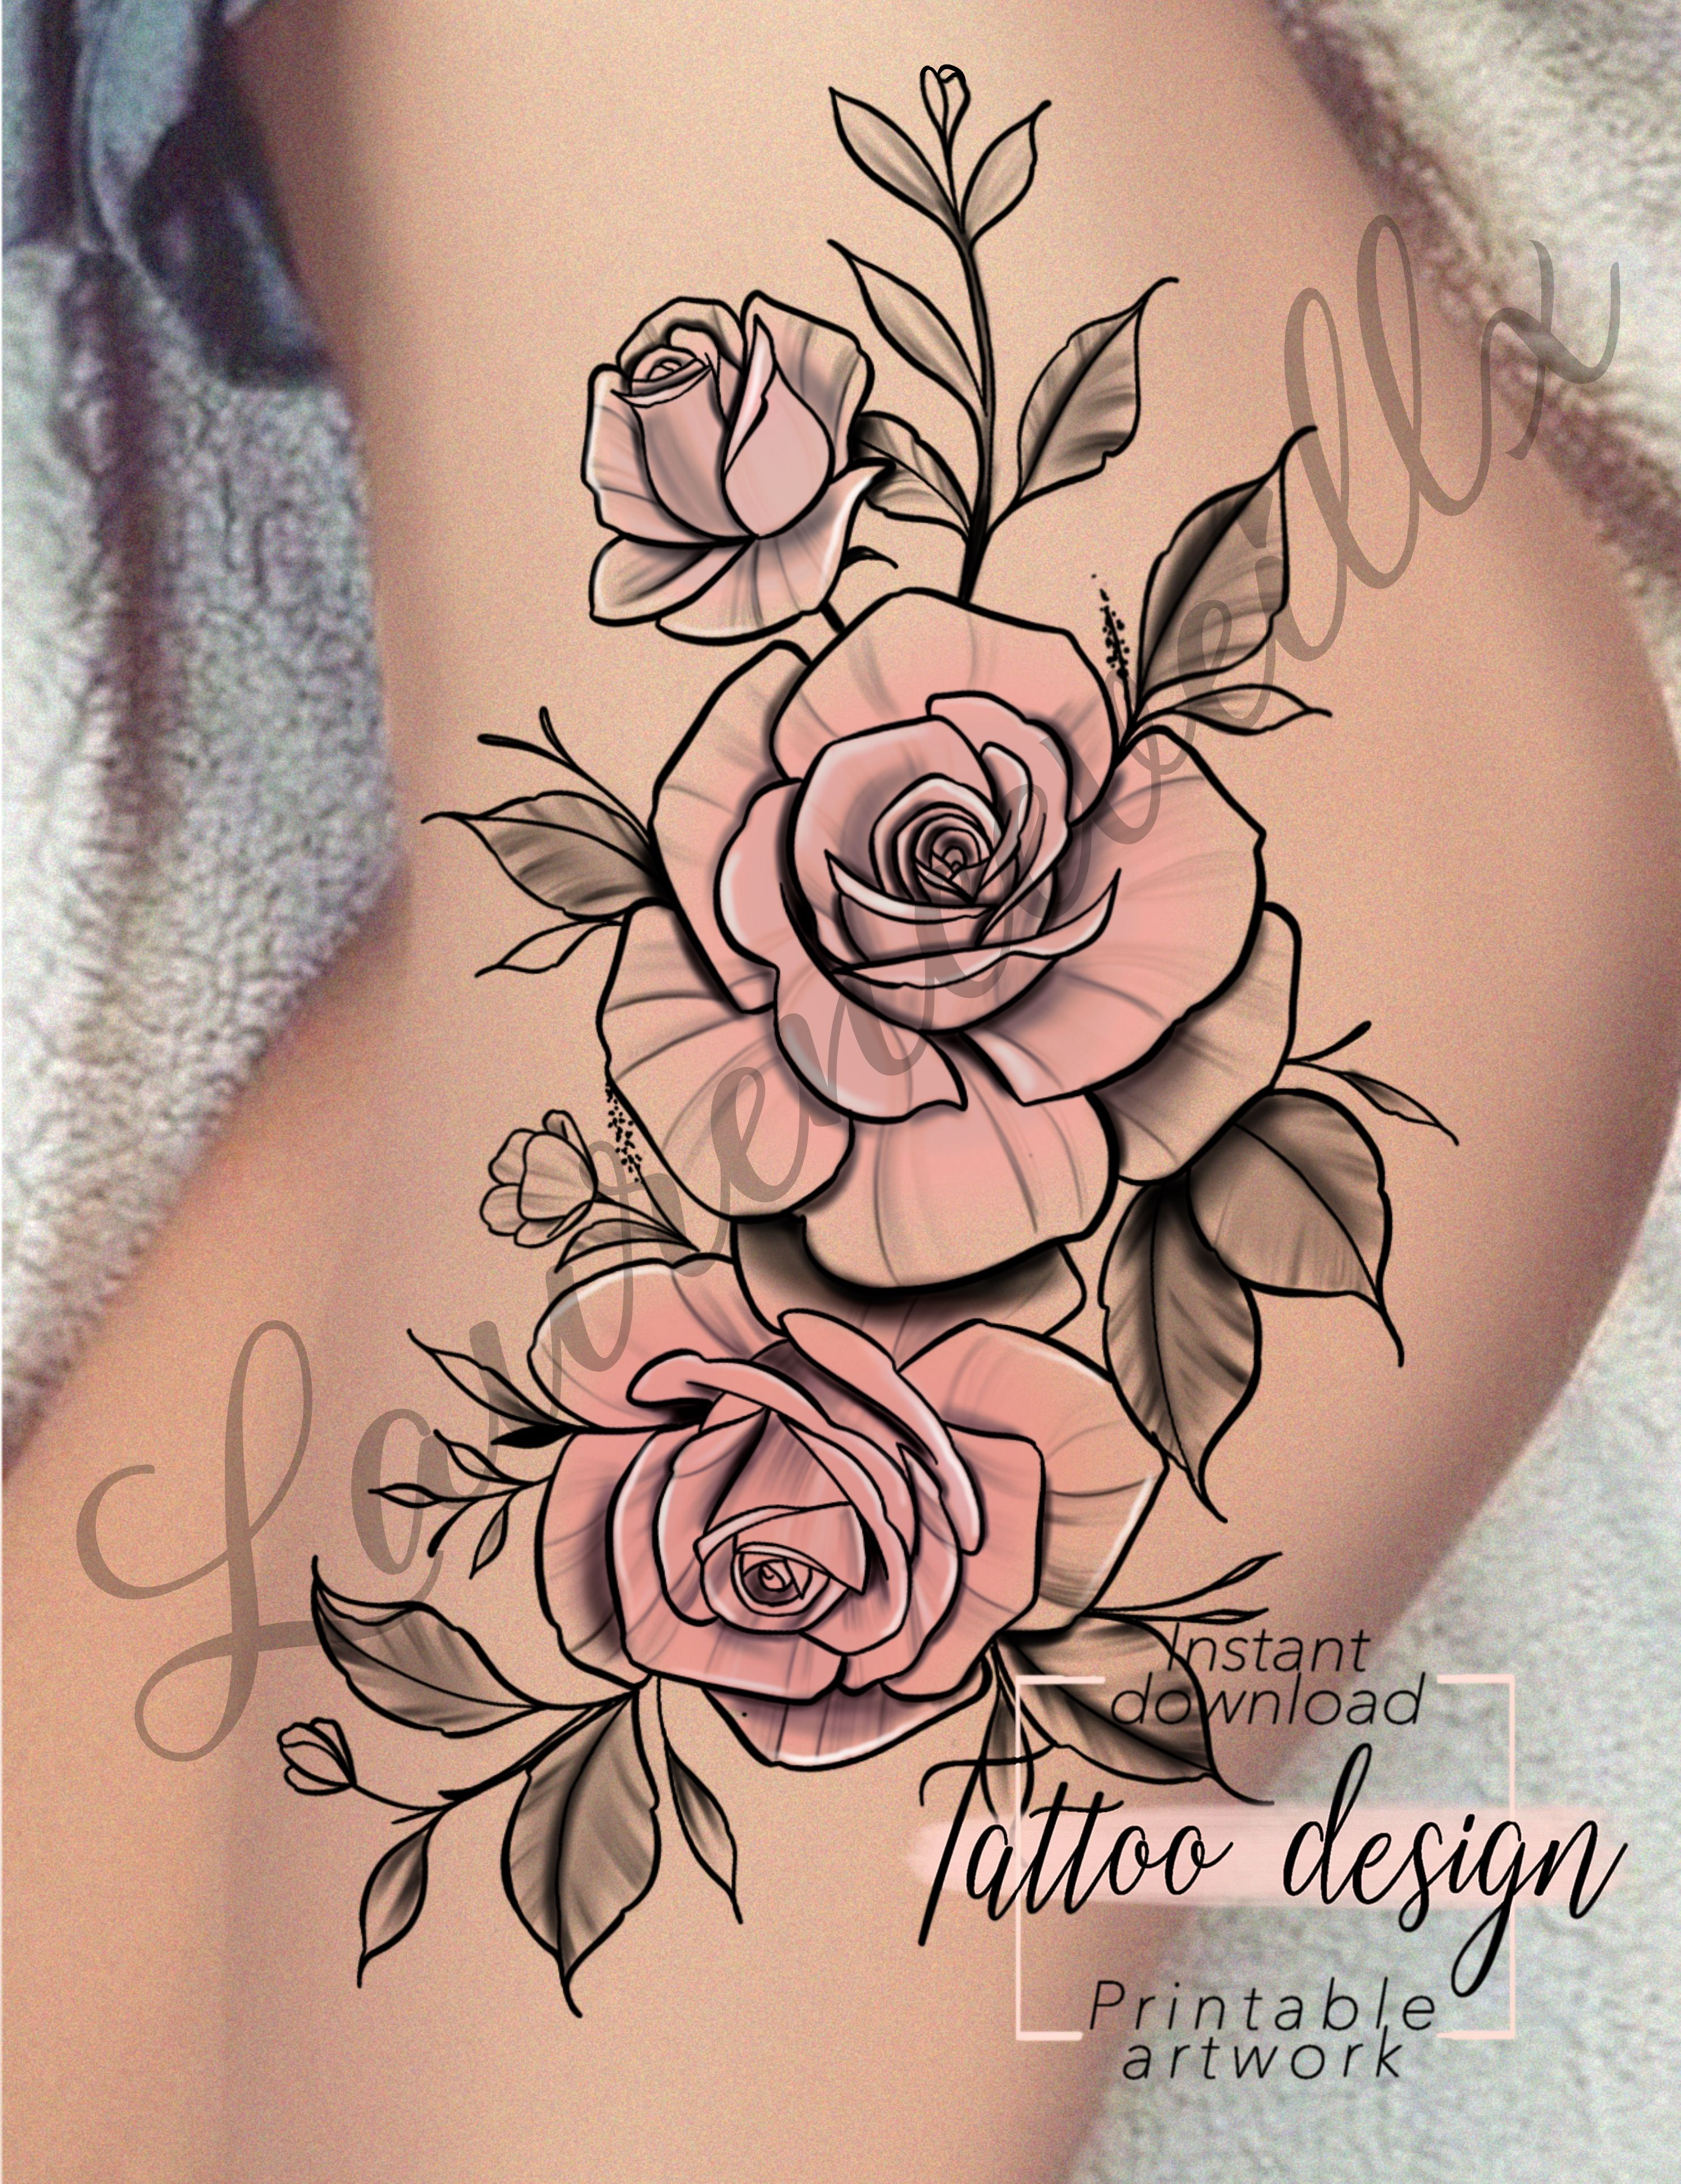 Etsy Printable Roses Hips Thigh Tattoo Design Instant Download In 2020 Hip Thigh Tattoos Thigh Tattoo Designs Thigh Tattoo